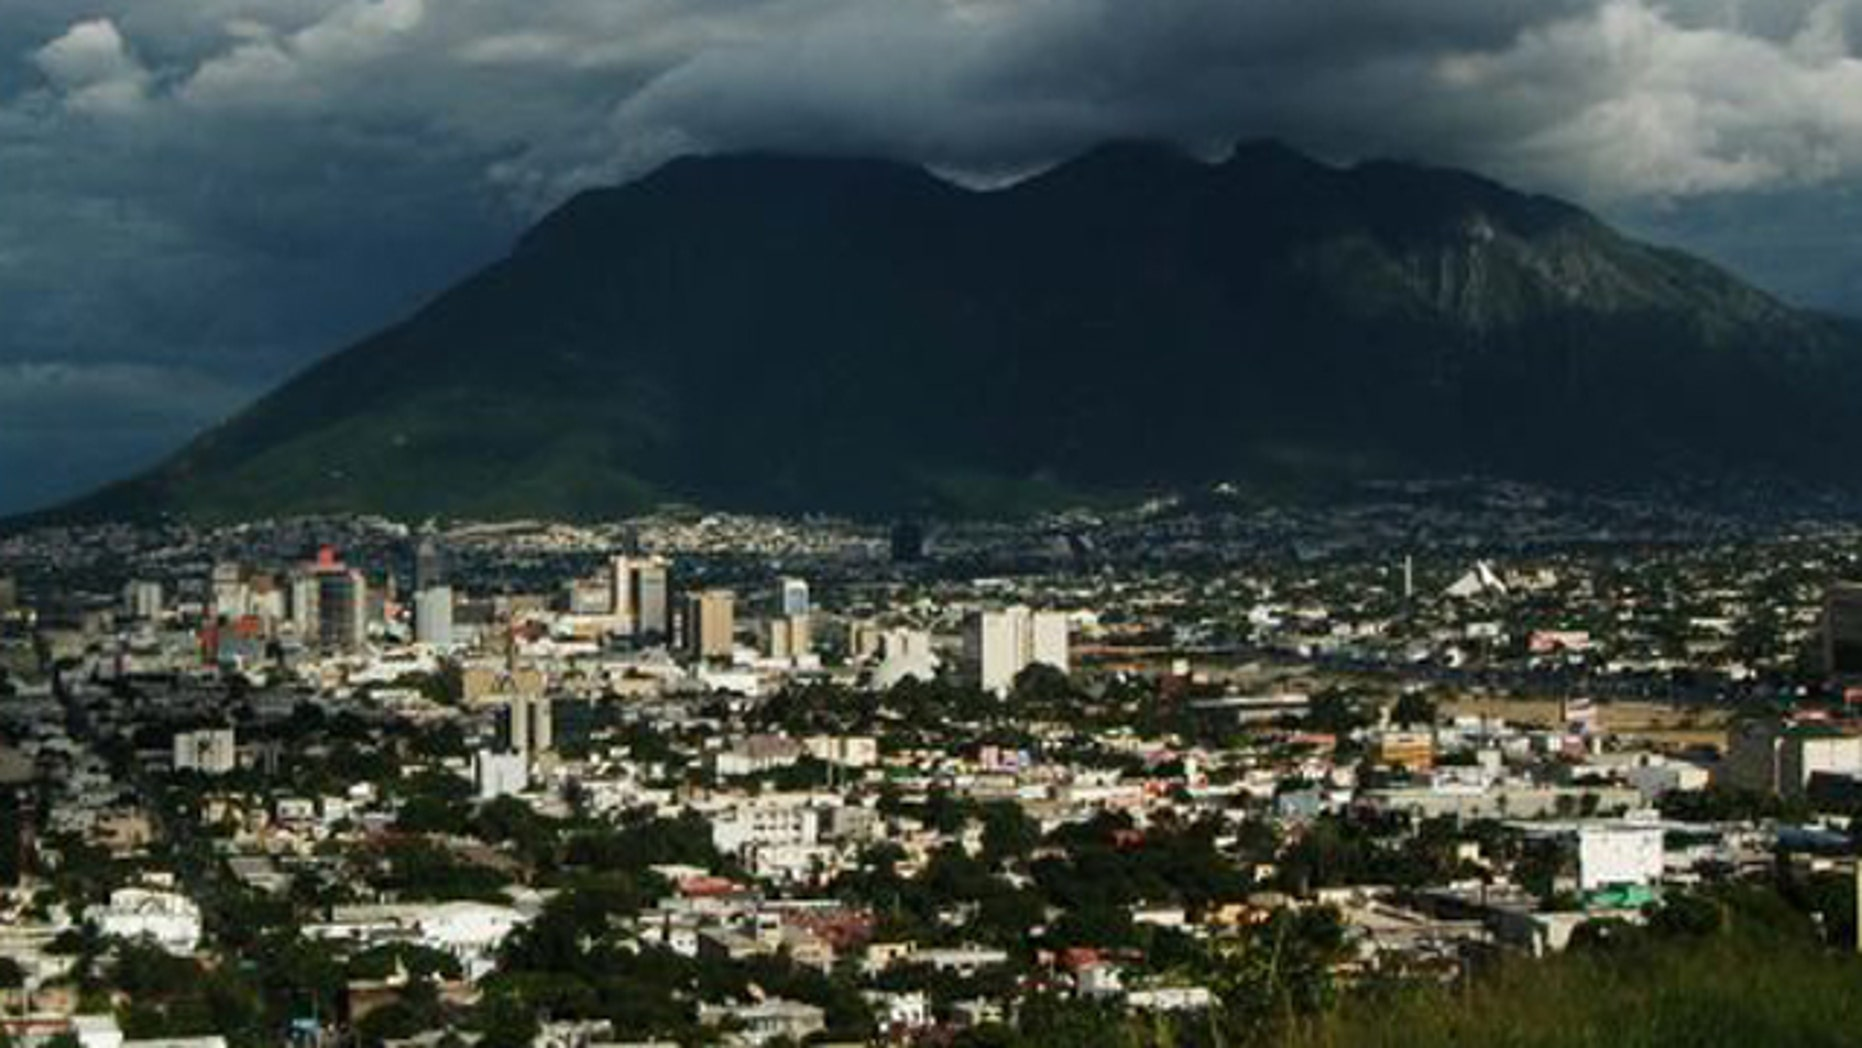 Monterrey, once Mexico's shining economic star, has seen its reputation diminish as extortion, violence and other incidents involving drug cartels have increased.